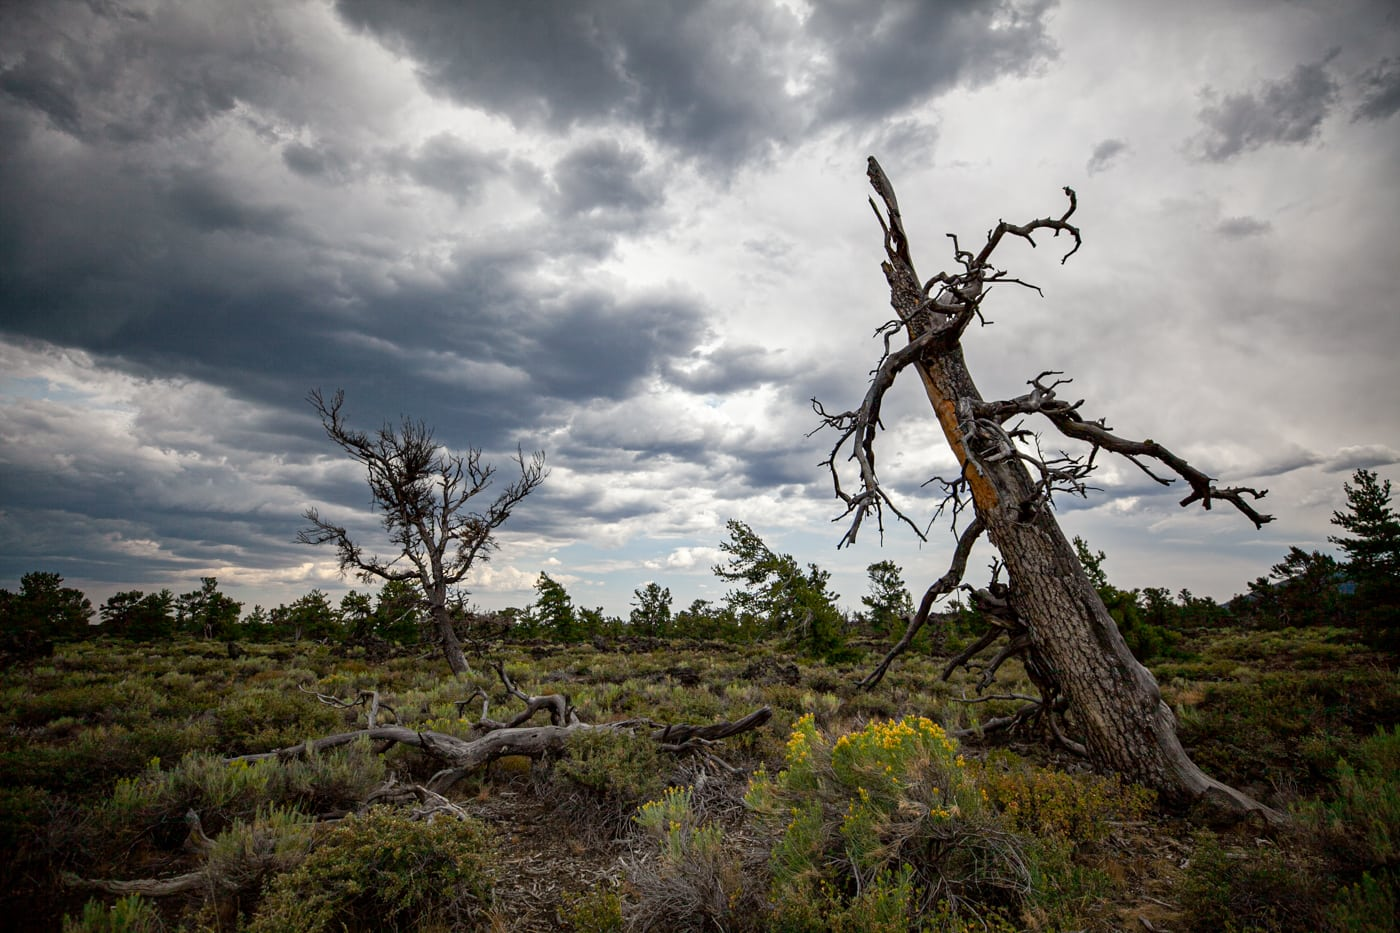 Craters of the Moon National Monument & Preserve in Idaho   Idaho Road Trip Stops